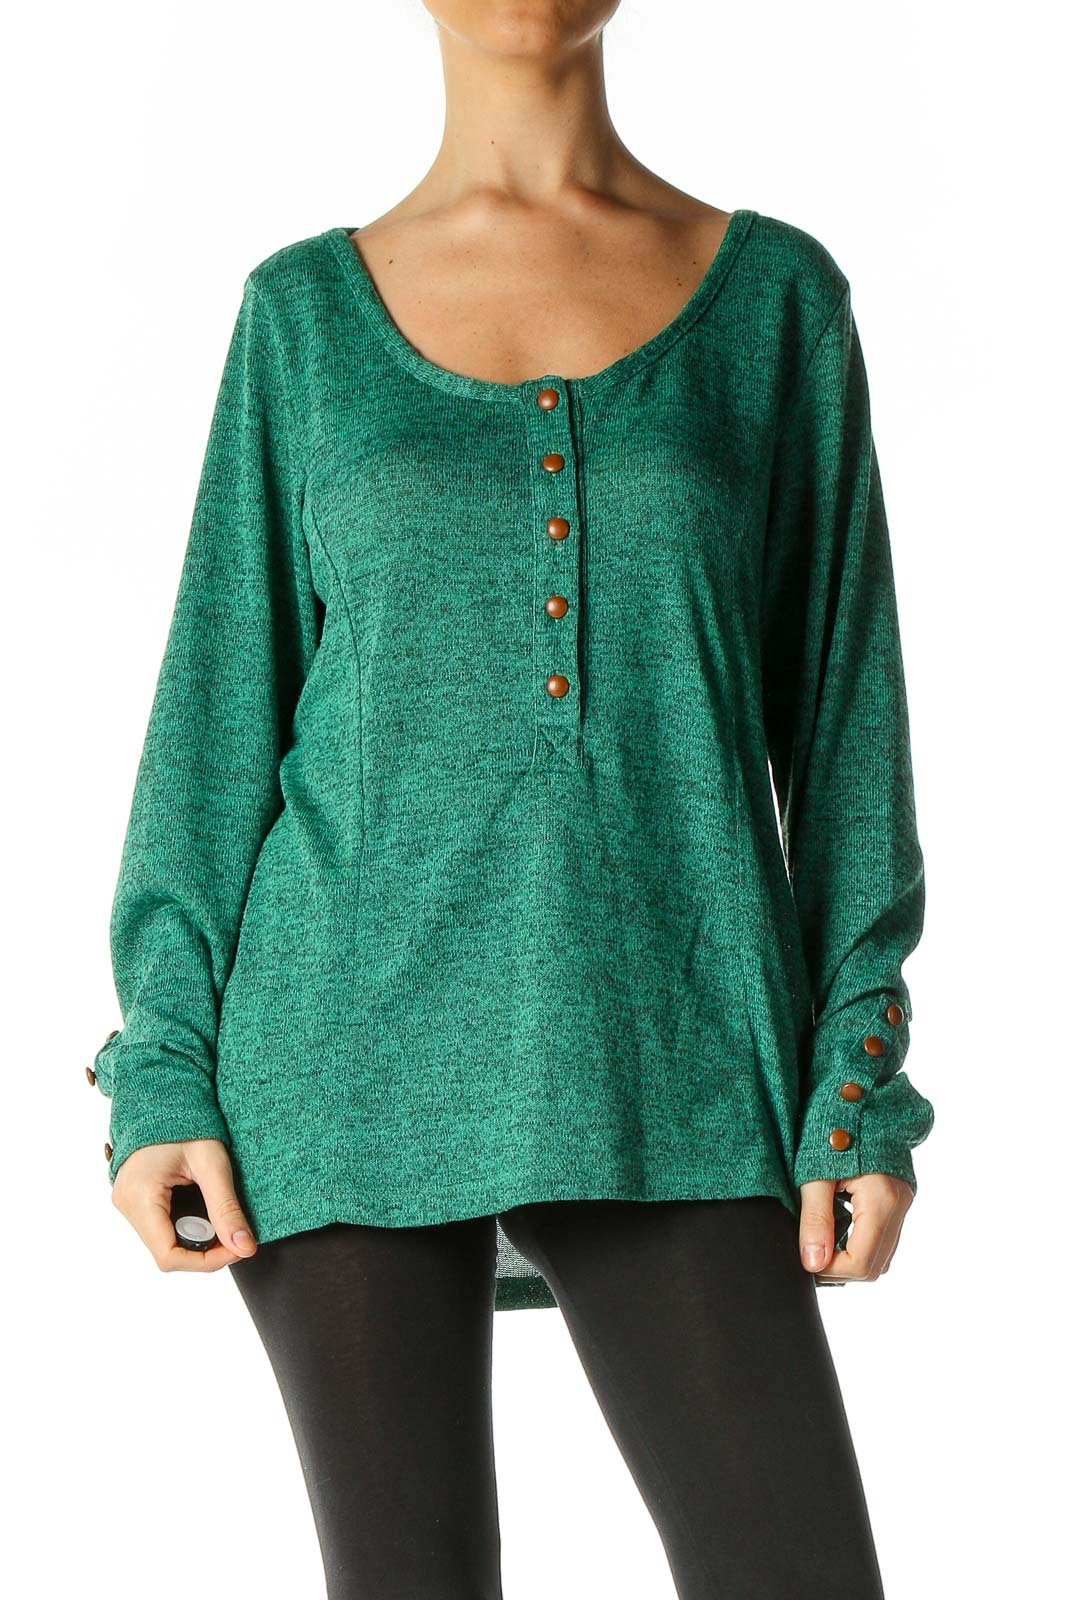 Green Textured Casual Blouse Front